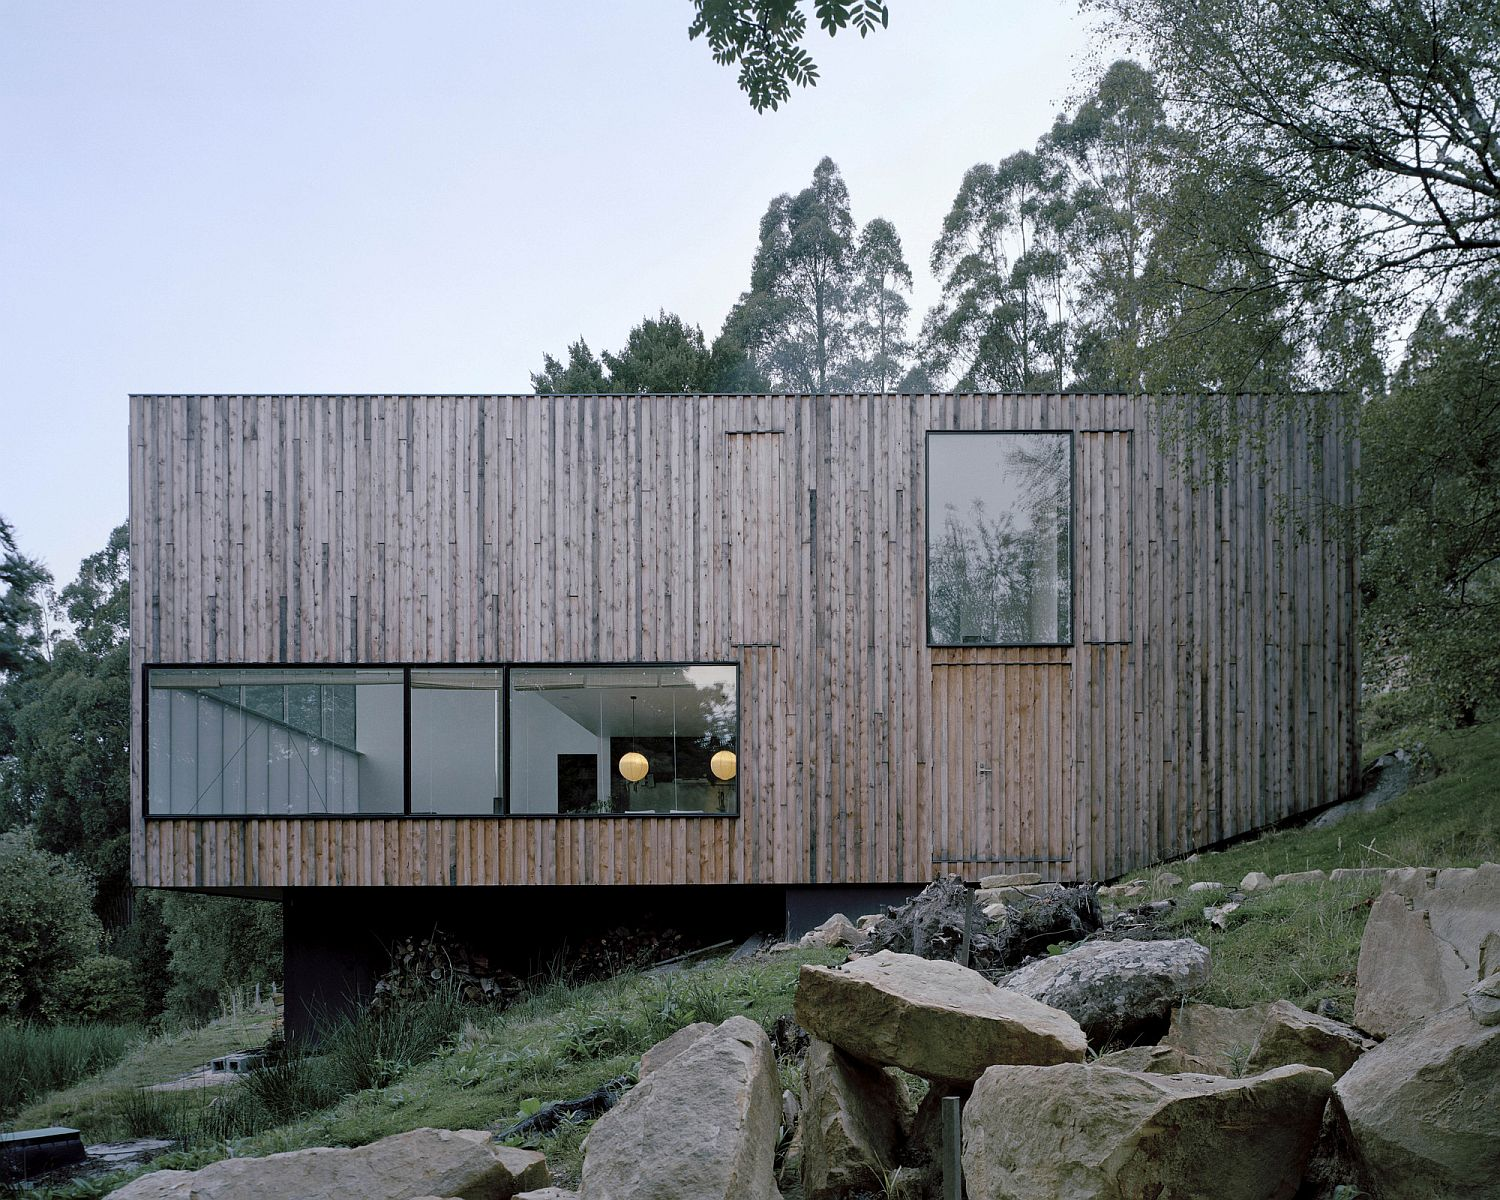 Cantilevered design of the home adapts to the slope of the lot